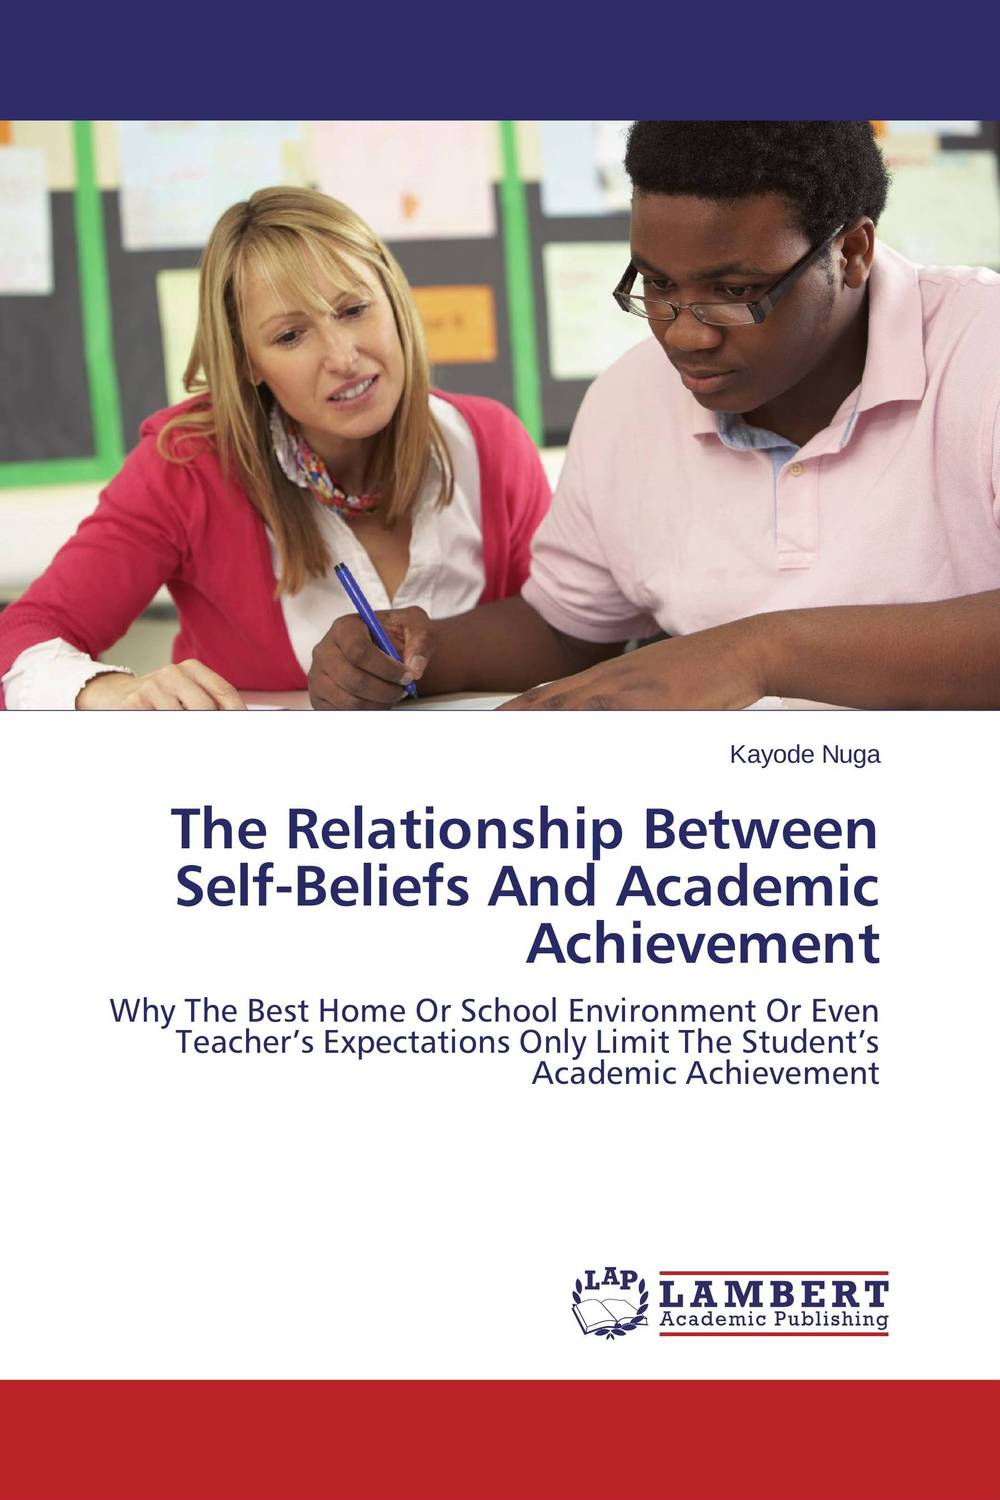 The Relationship Between Self-Beliefs And Academic Achievement tobias olweny and kenedy omondi the effect of macro economic factors on stock return volatility at nse